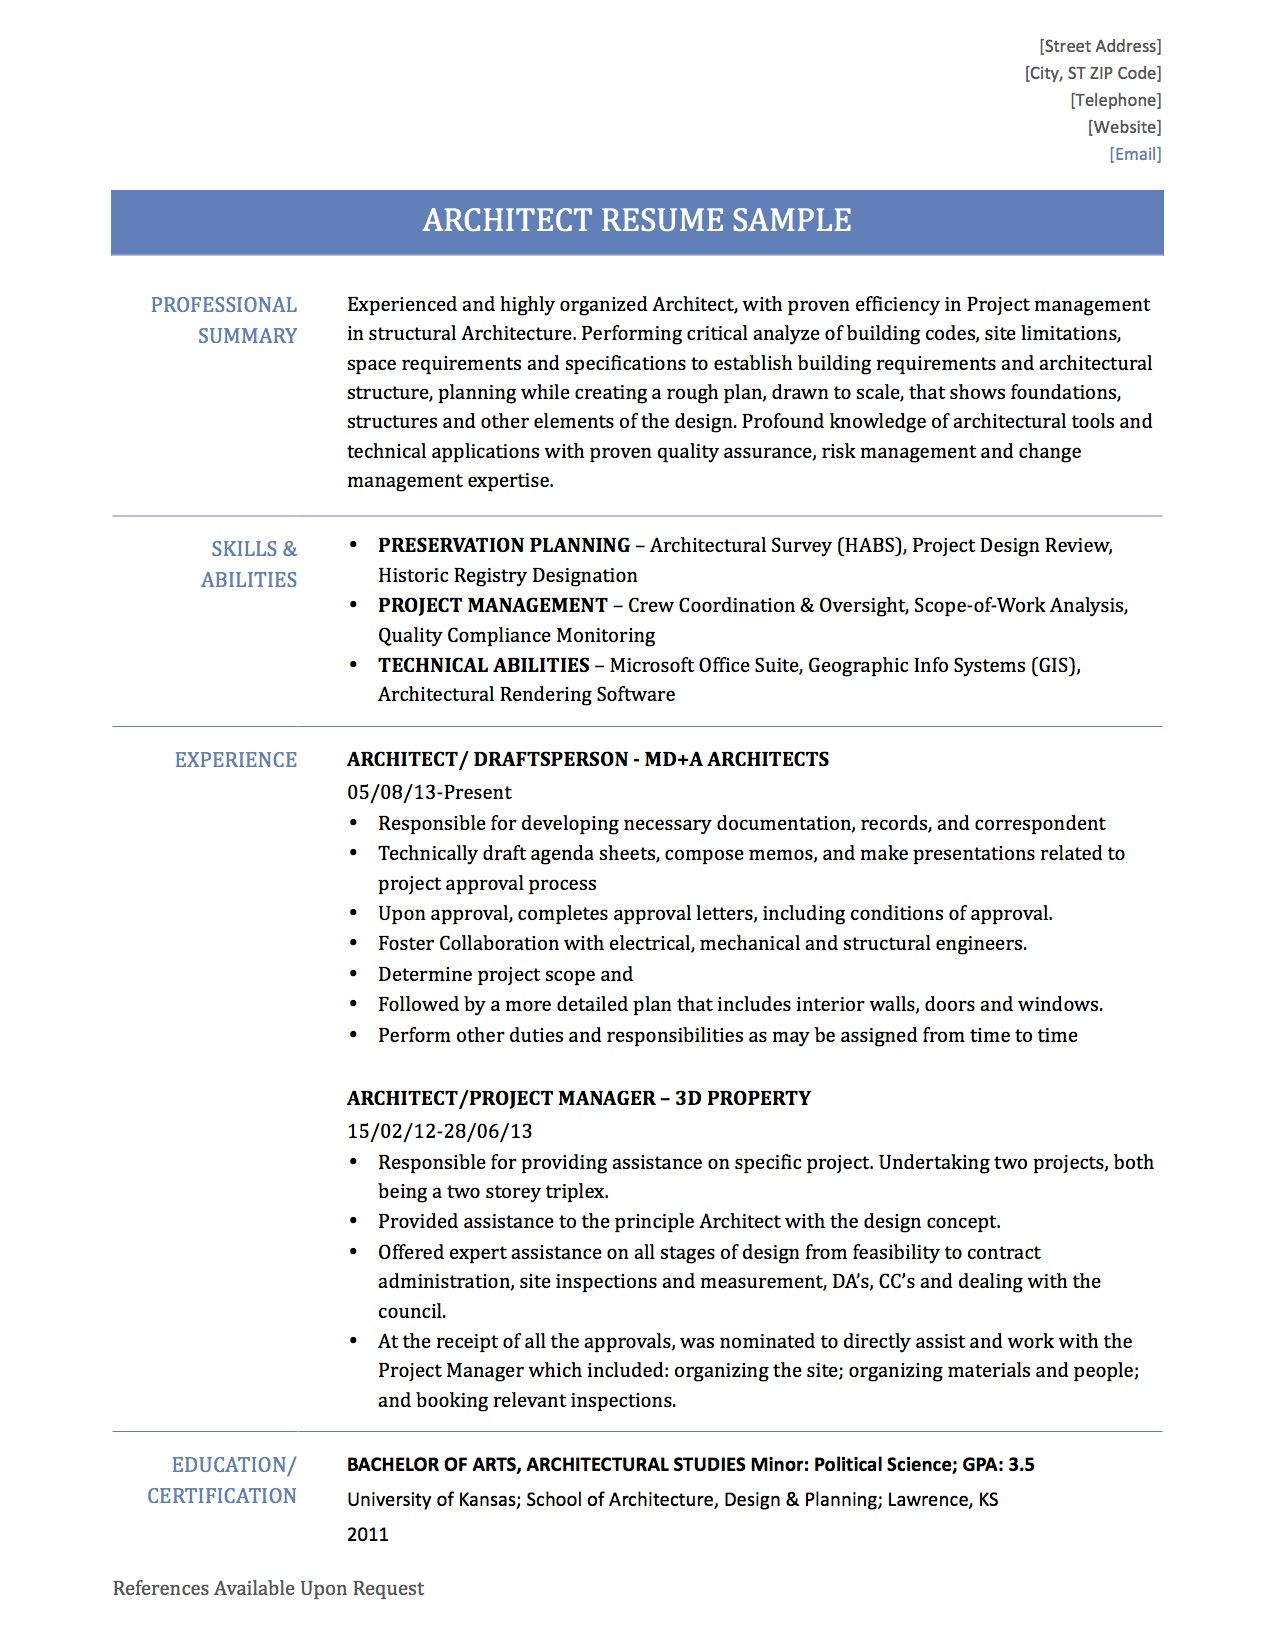 Architect Resume Samples Like All Good Builders You Can Start From Previous Blueprints But